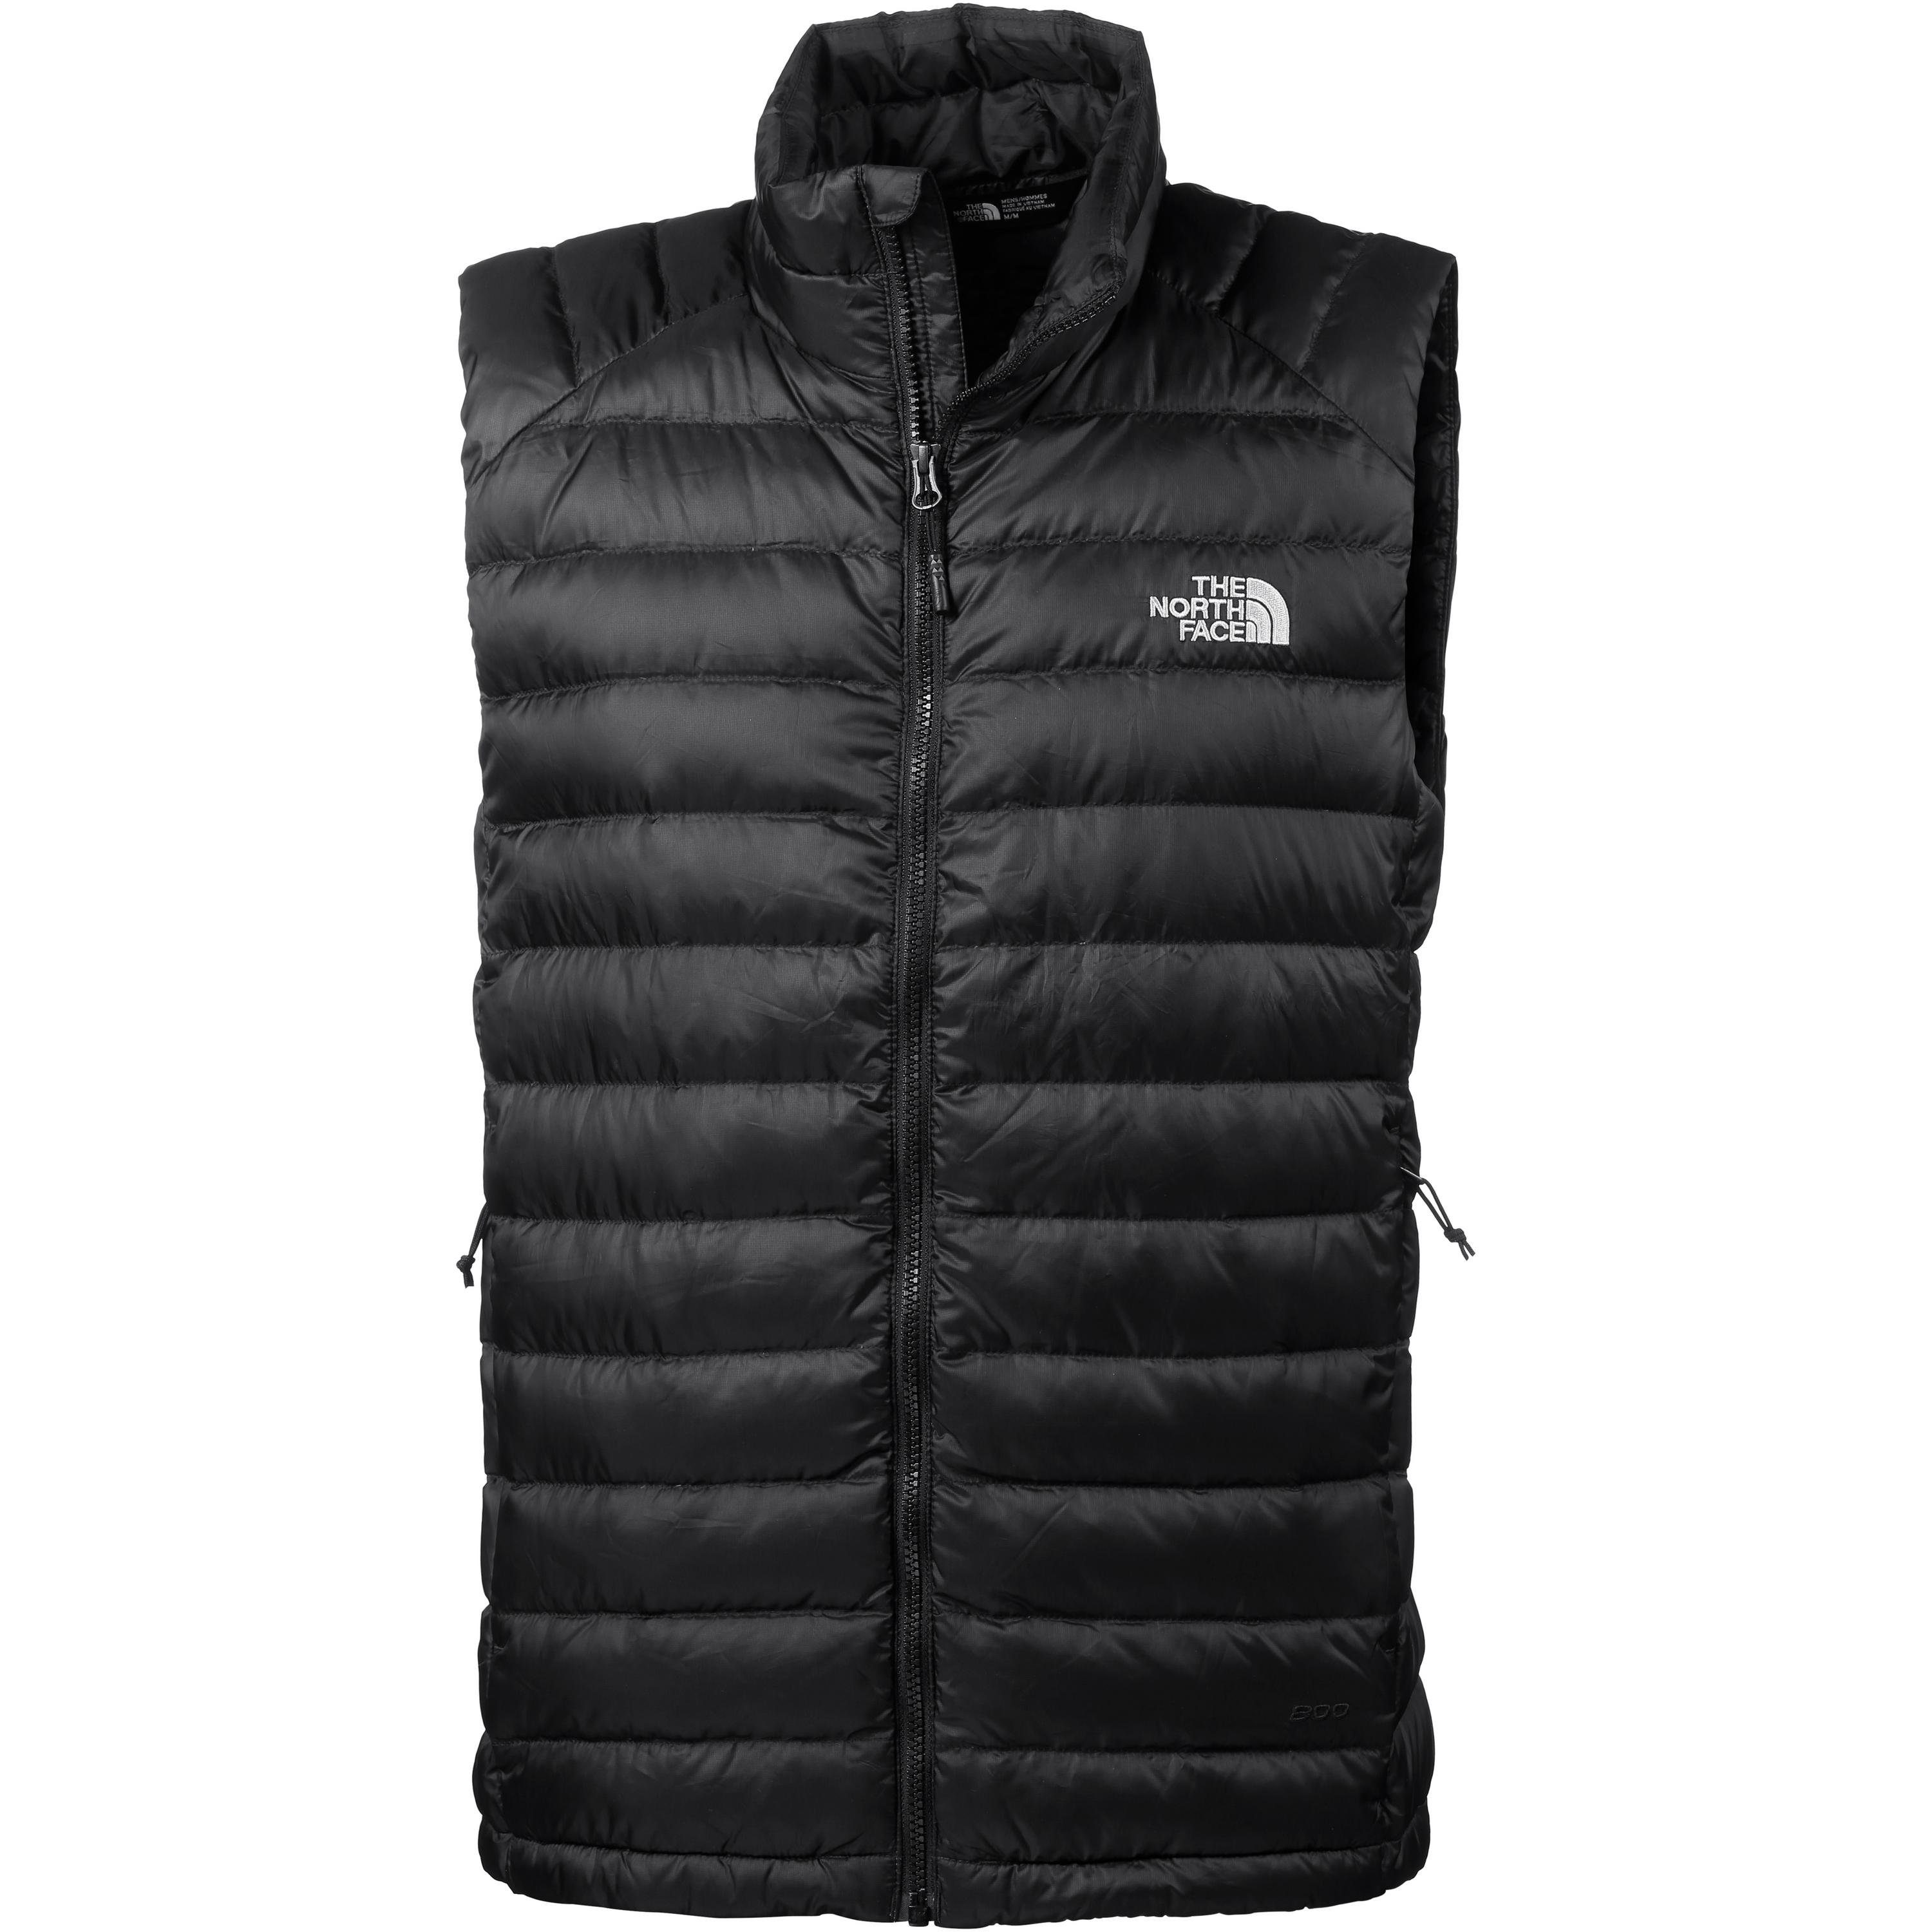 The North Face Funktionsweste »TREVAIL«